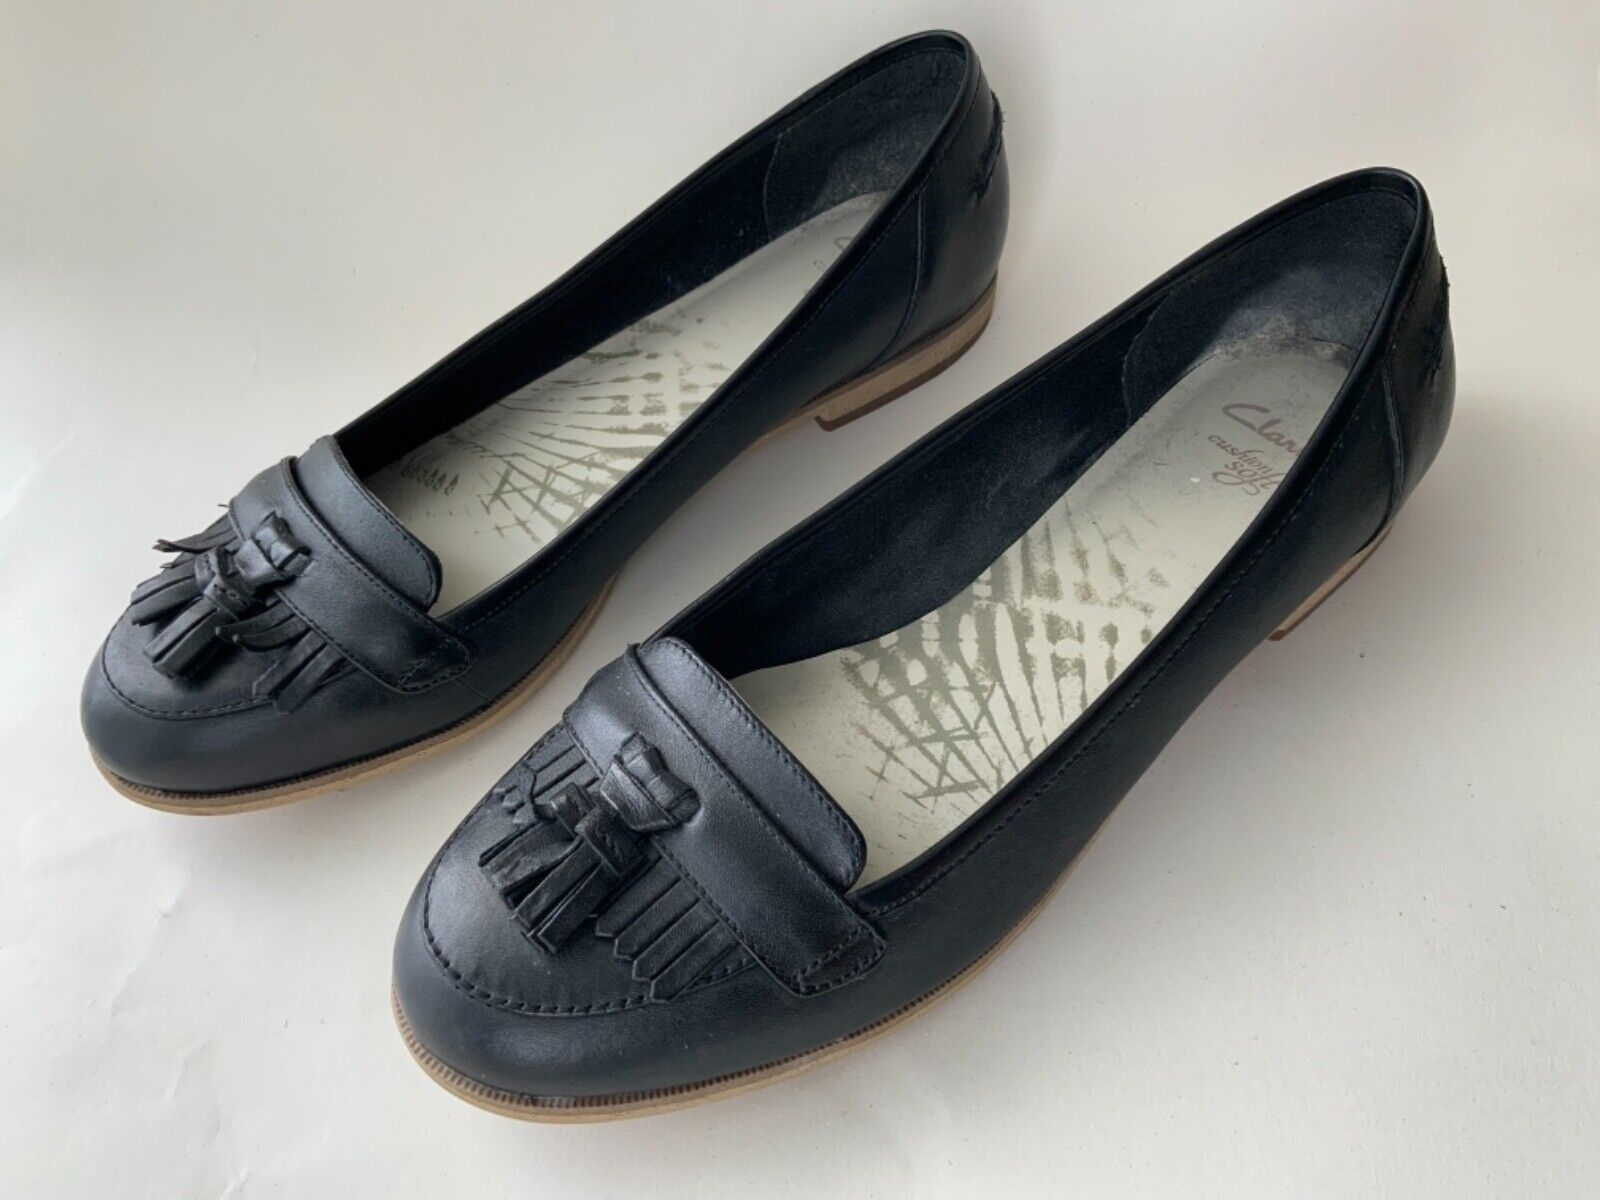 WOMENS SHOES CLARKS Flats Low Heel LOAFER 7.5 Black Leather Brogue Soft